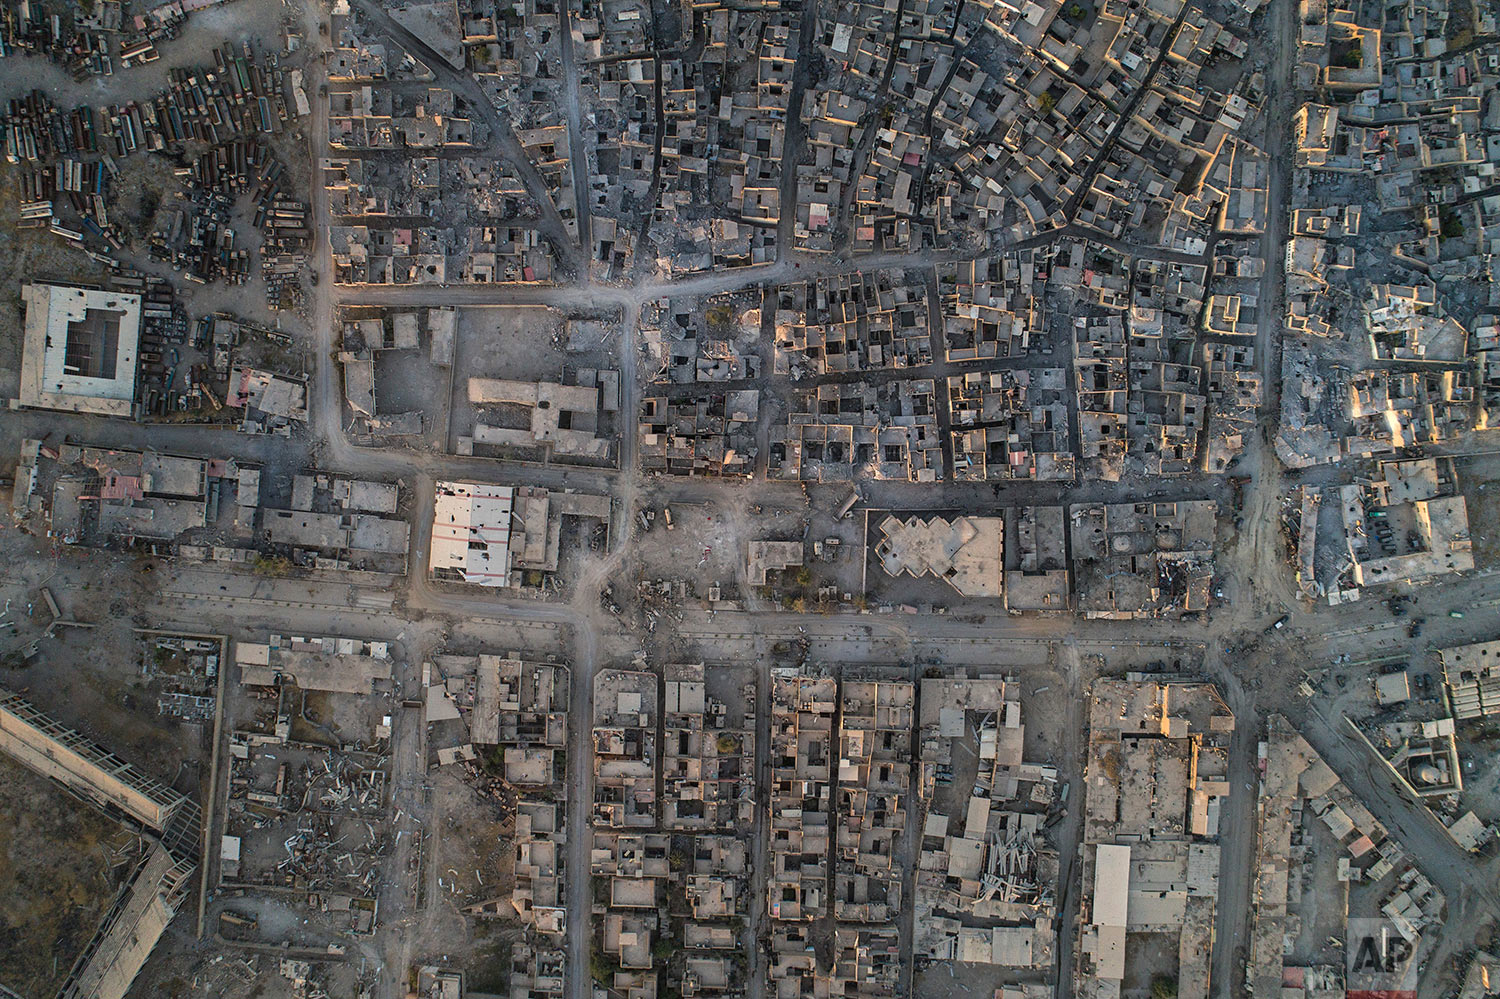 In this June 29, 2017 photo, aerial view of damaged buildings in the Old City of Mosul, Iraq. (AP Photo/Felipe Dana)